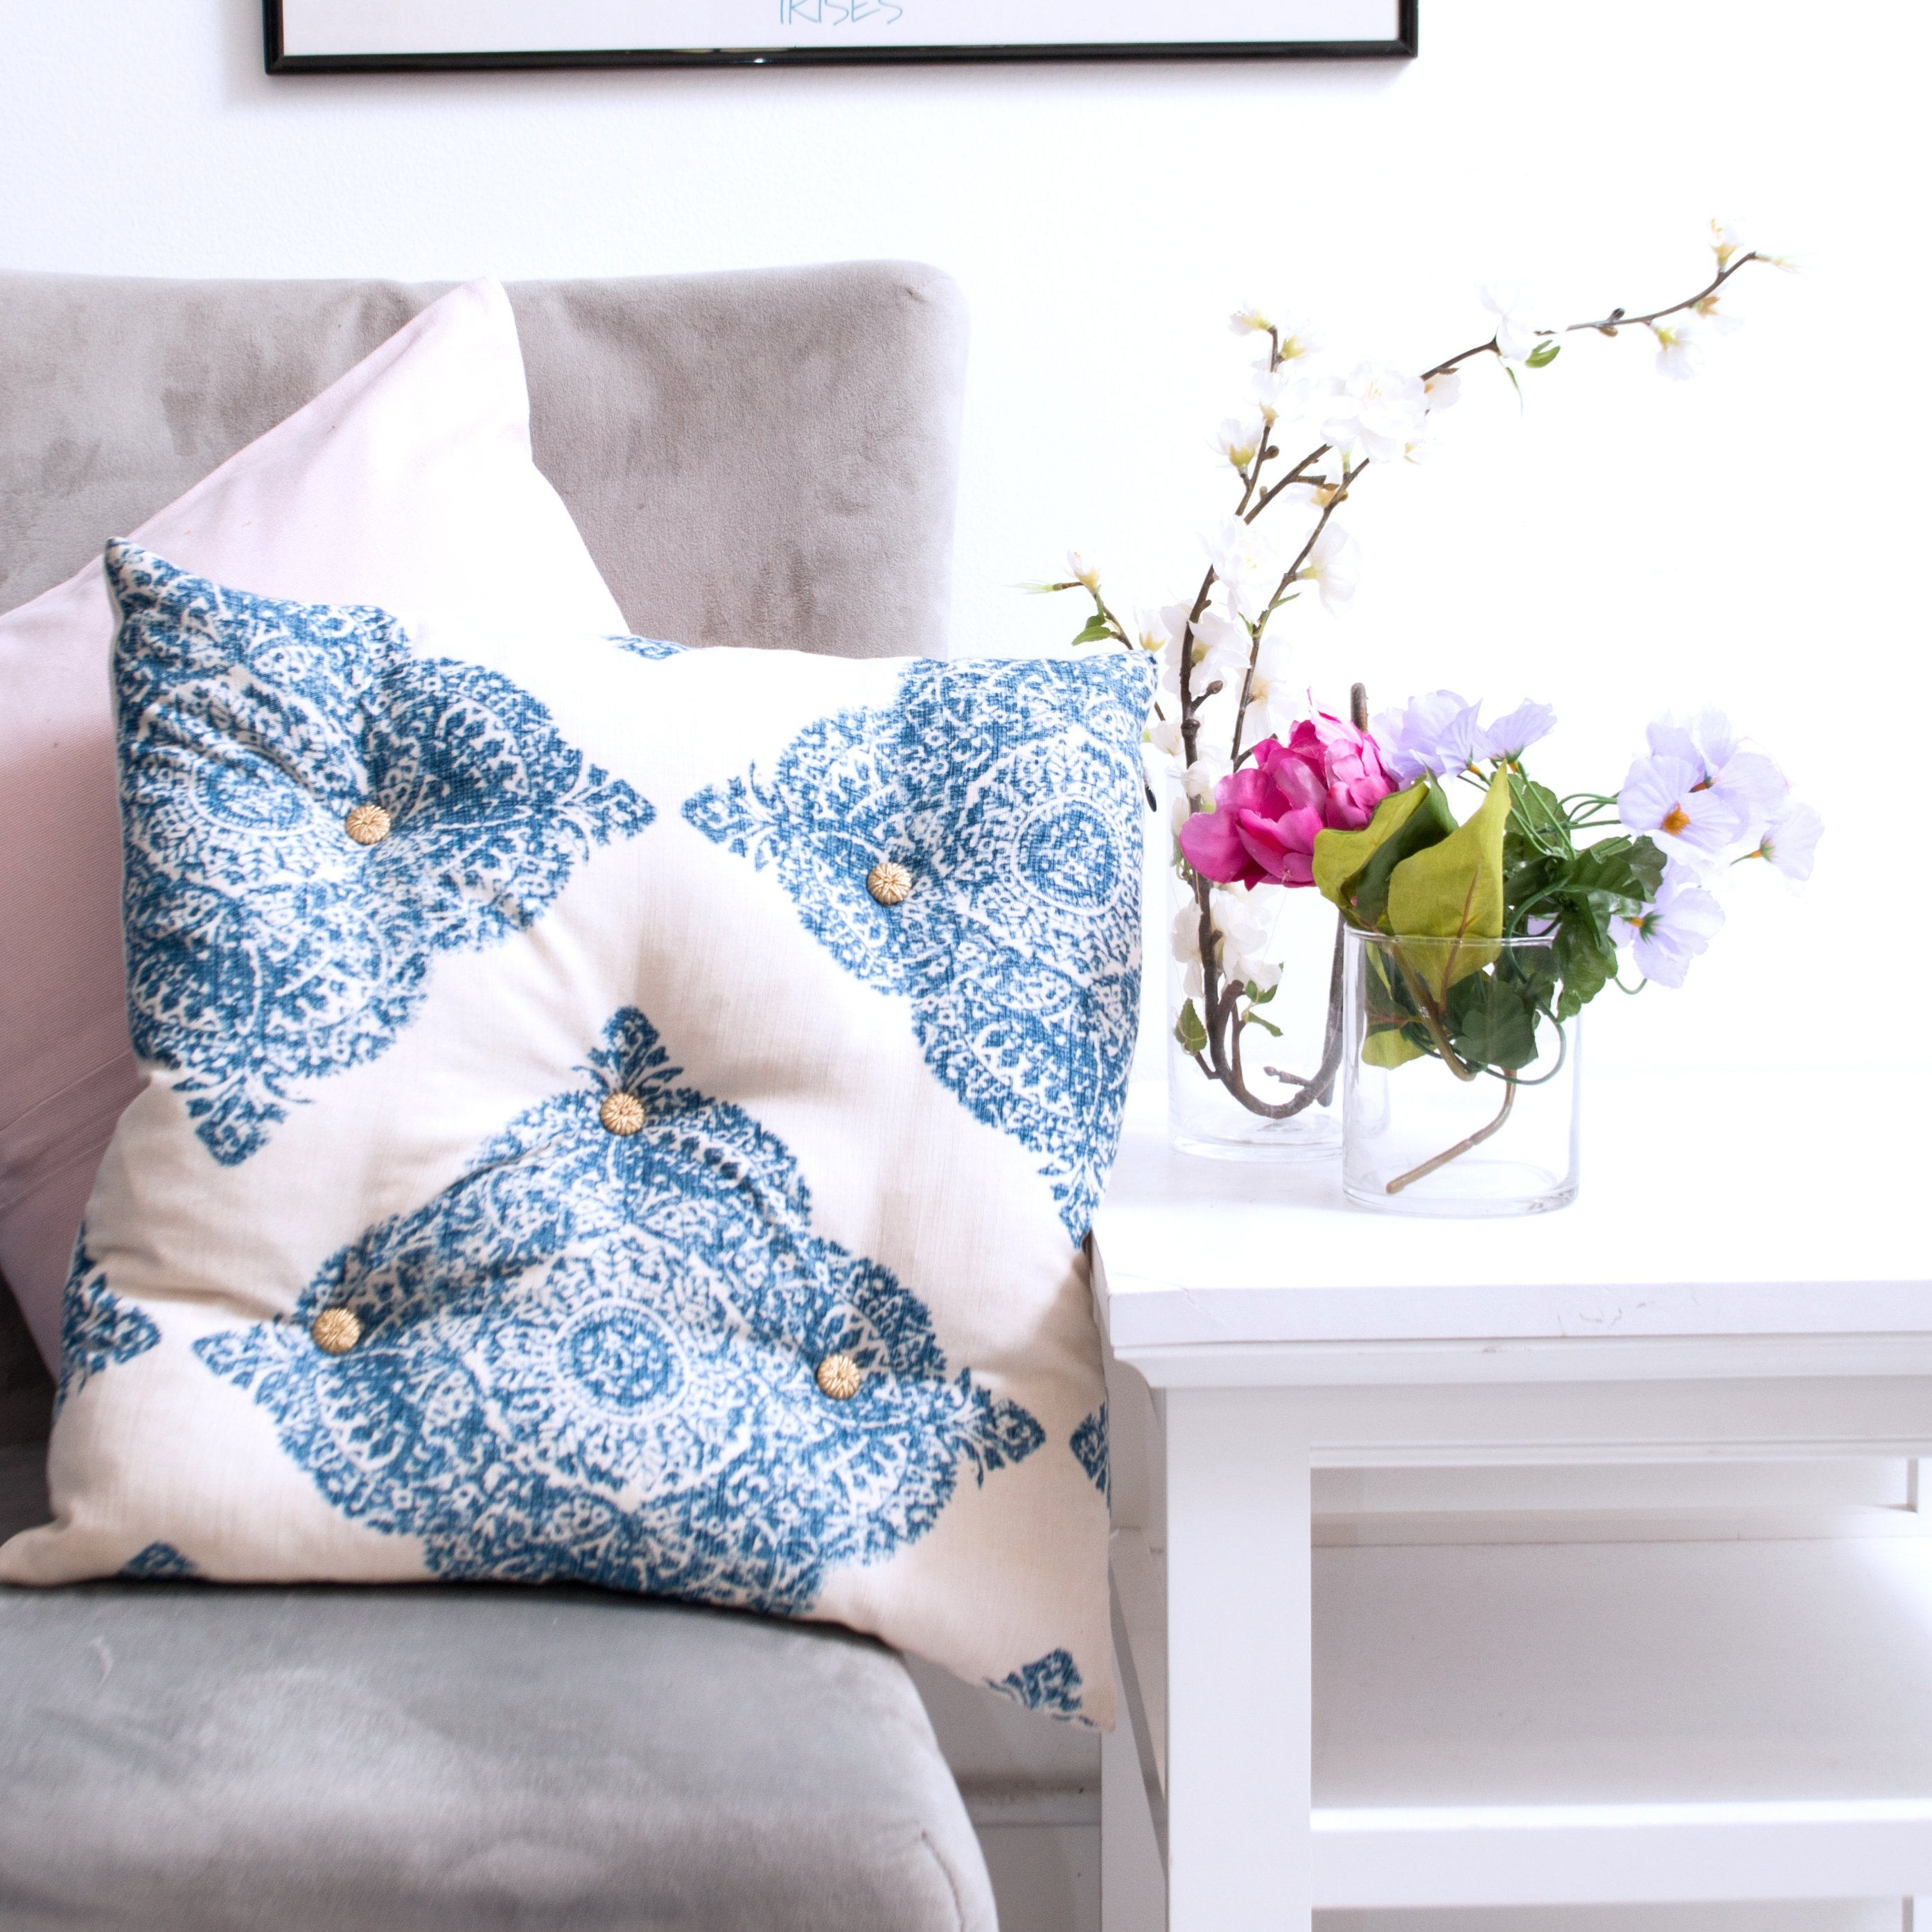 DIY: Tufted Pillow ? M&J Blog